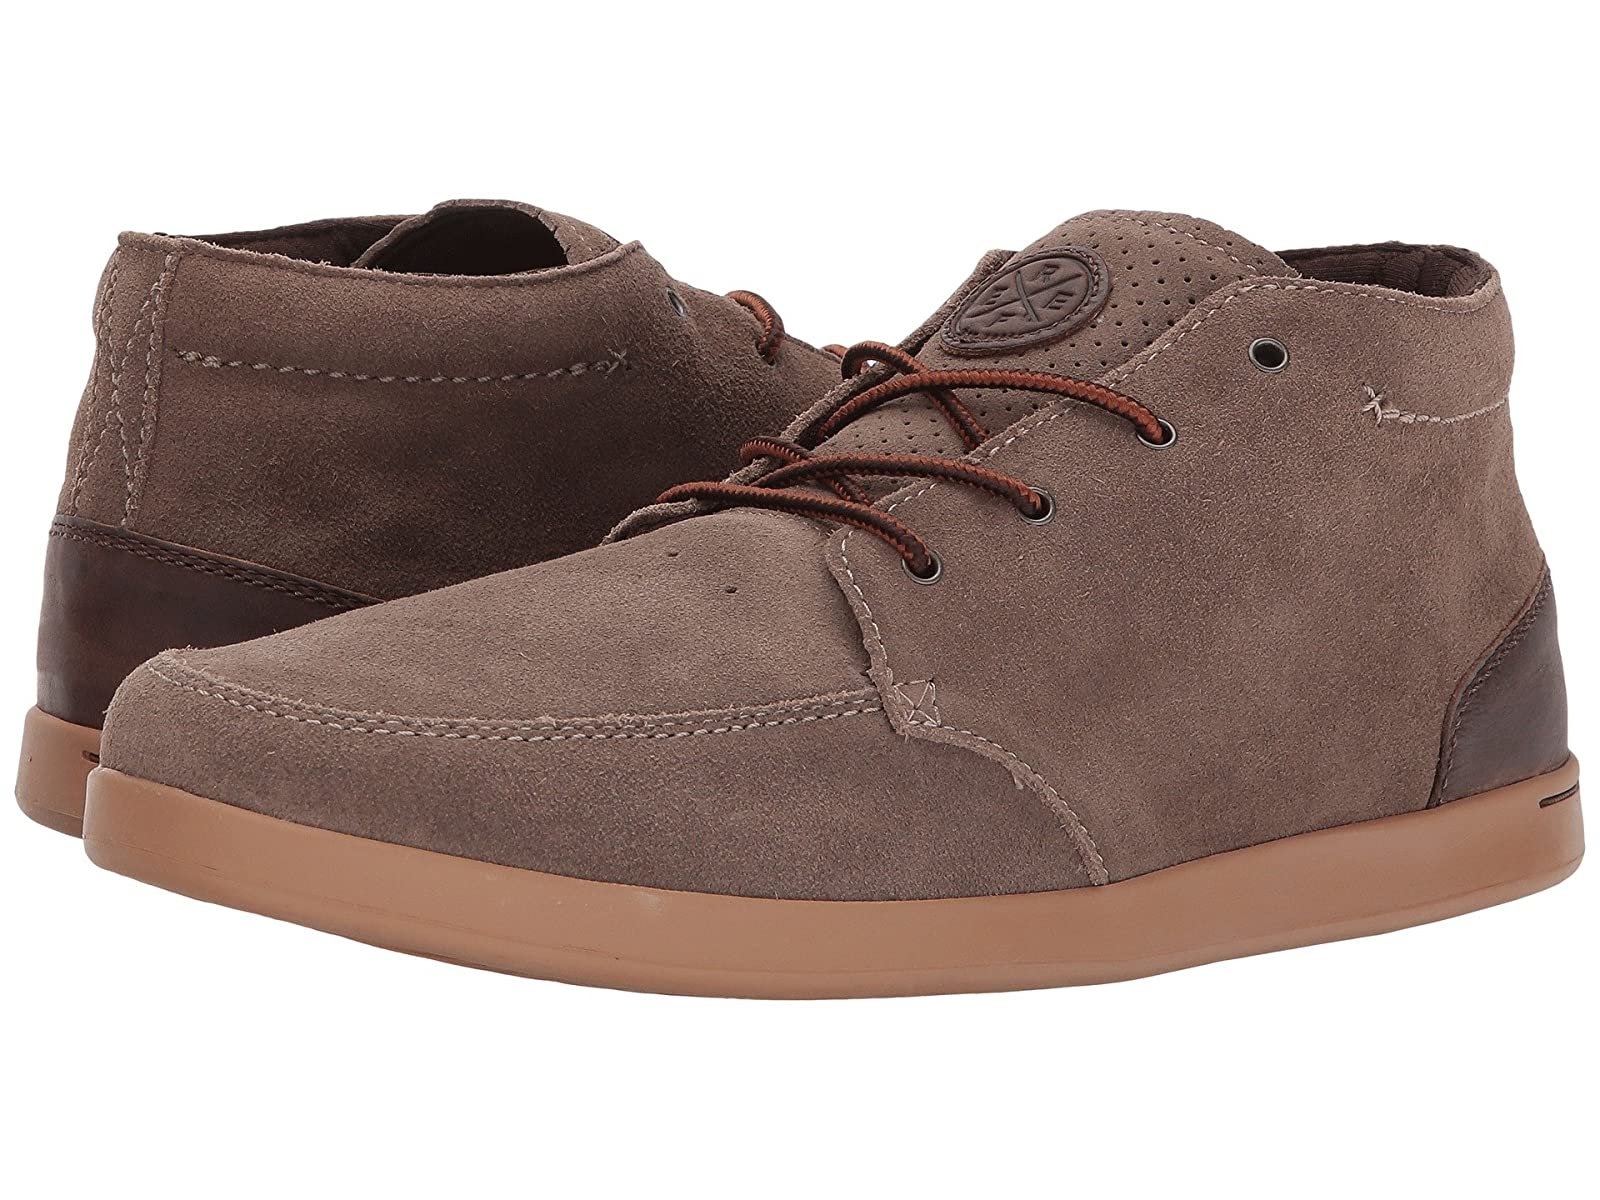 Reef Spiniker Mid SECheap and distinctive eye-catching shoes